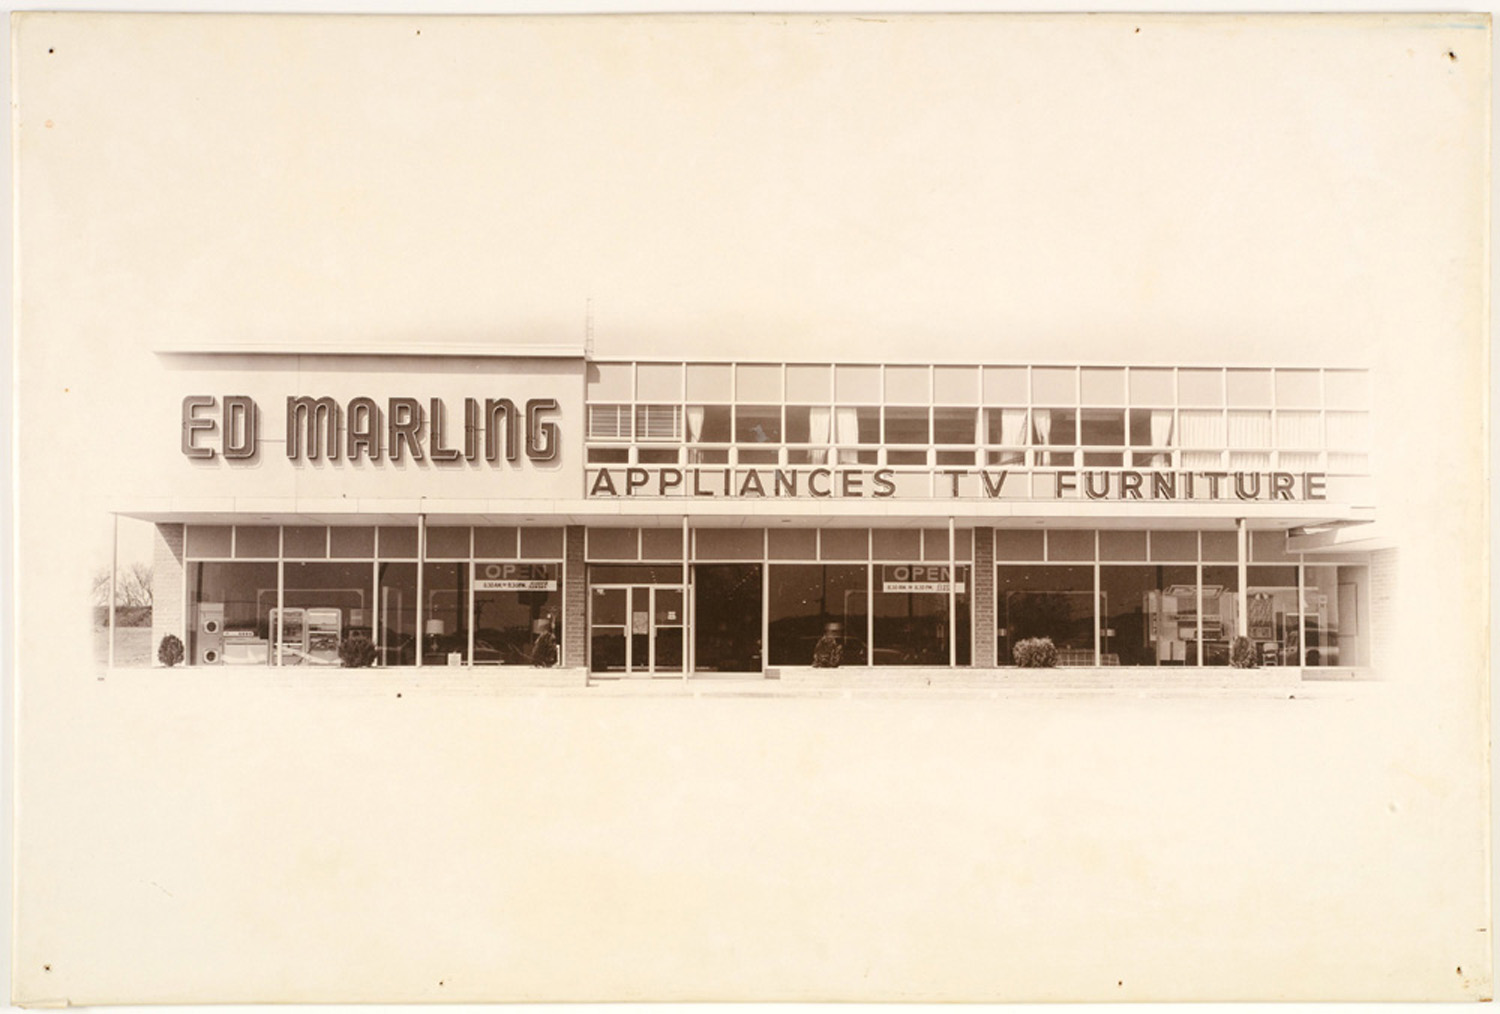 Ed Marling furniture and appliances store in Topeka, Kansas